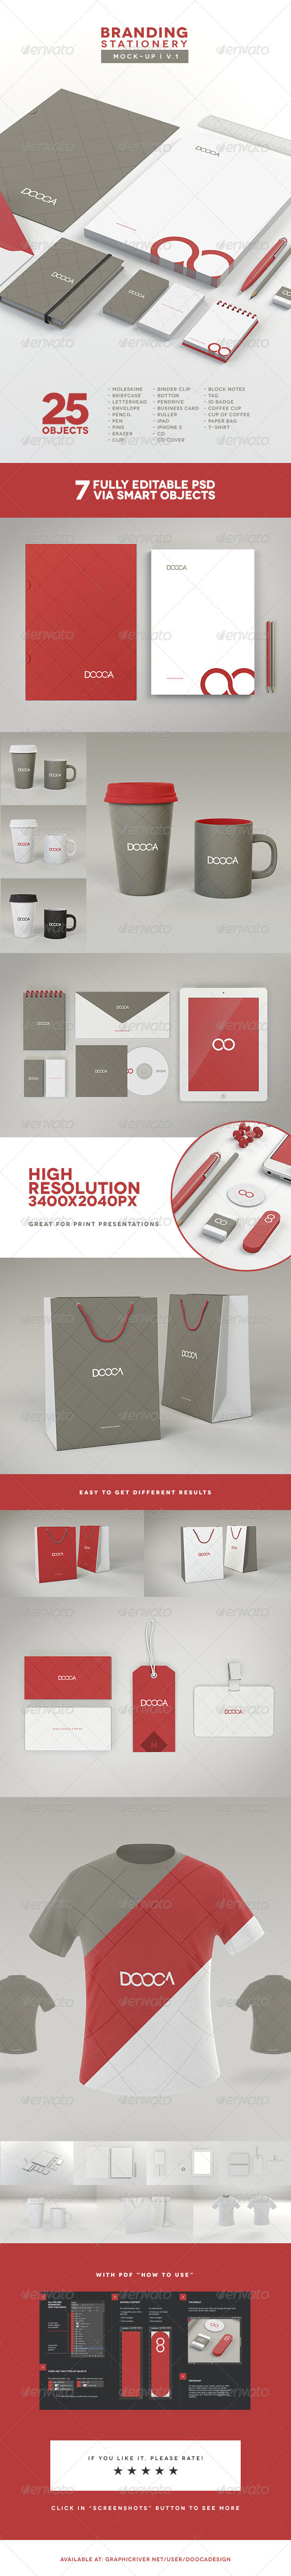 Branding / Stationery Mock-up - Stationery Print